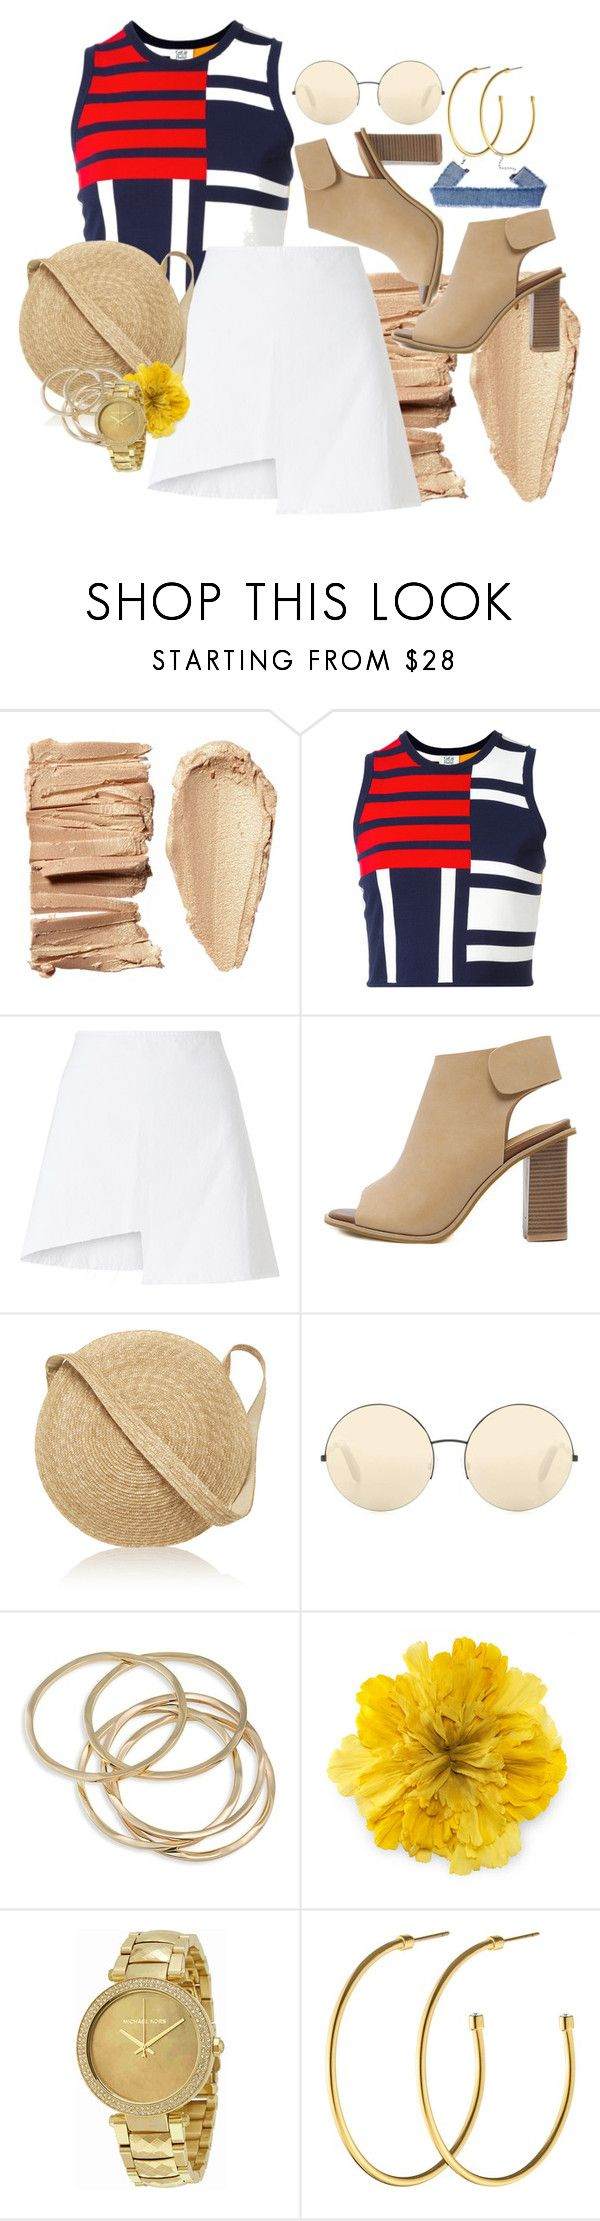 """Nautical Look"" by megmigomalley on Polyvore featuring Tommy Hilfiger, WÃ¥ven, Samuji, Victoria Beckham, ABS by Allen Schwartz, Gucci, Michael Kors and Dyrberg/Kern"